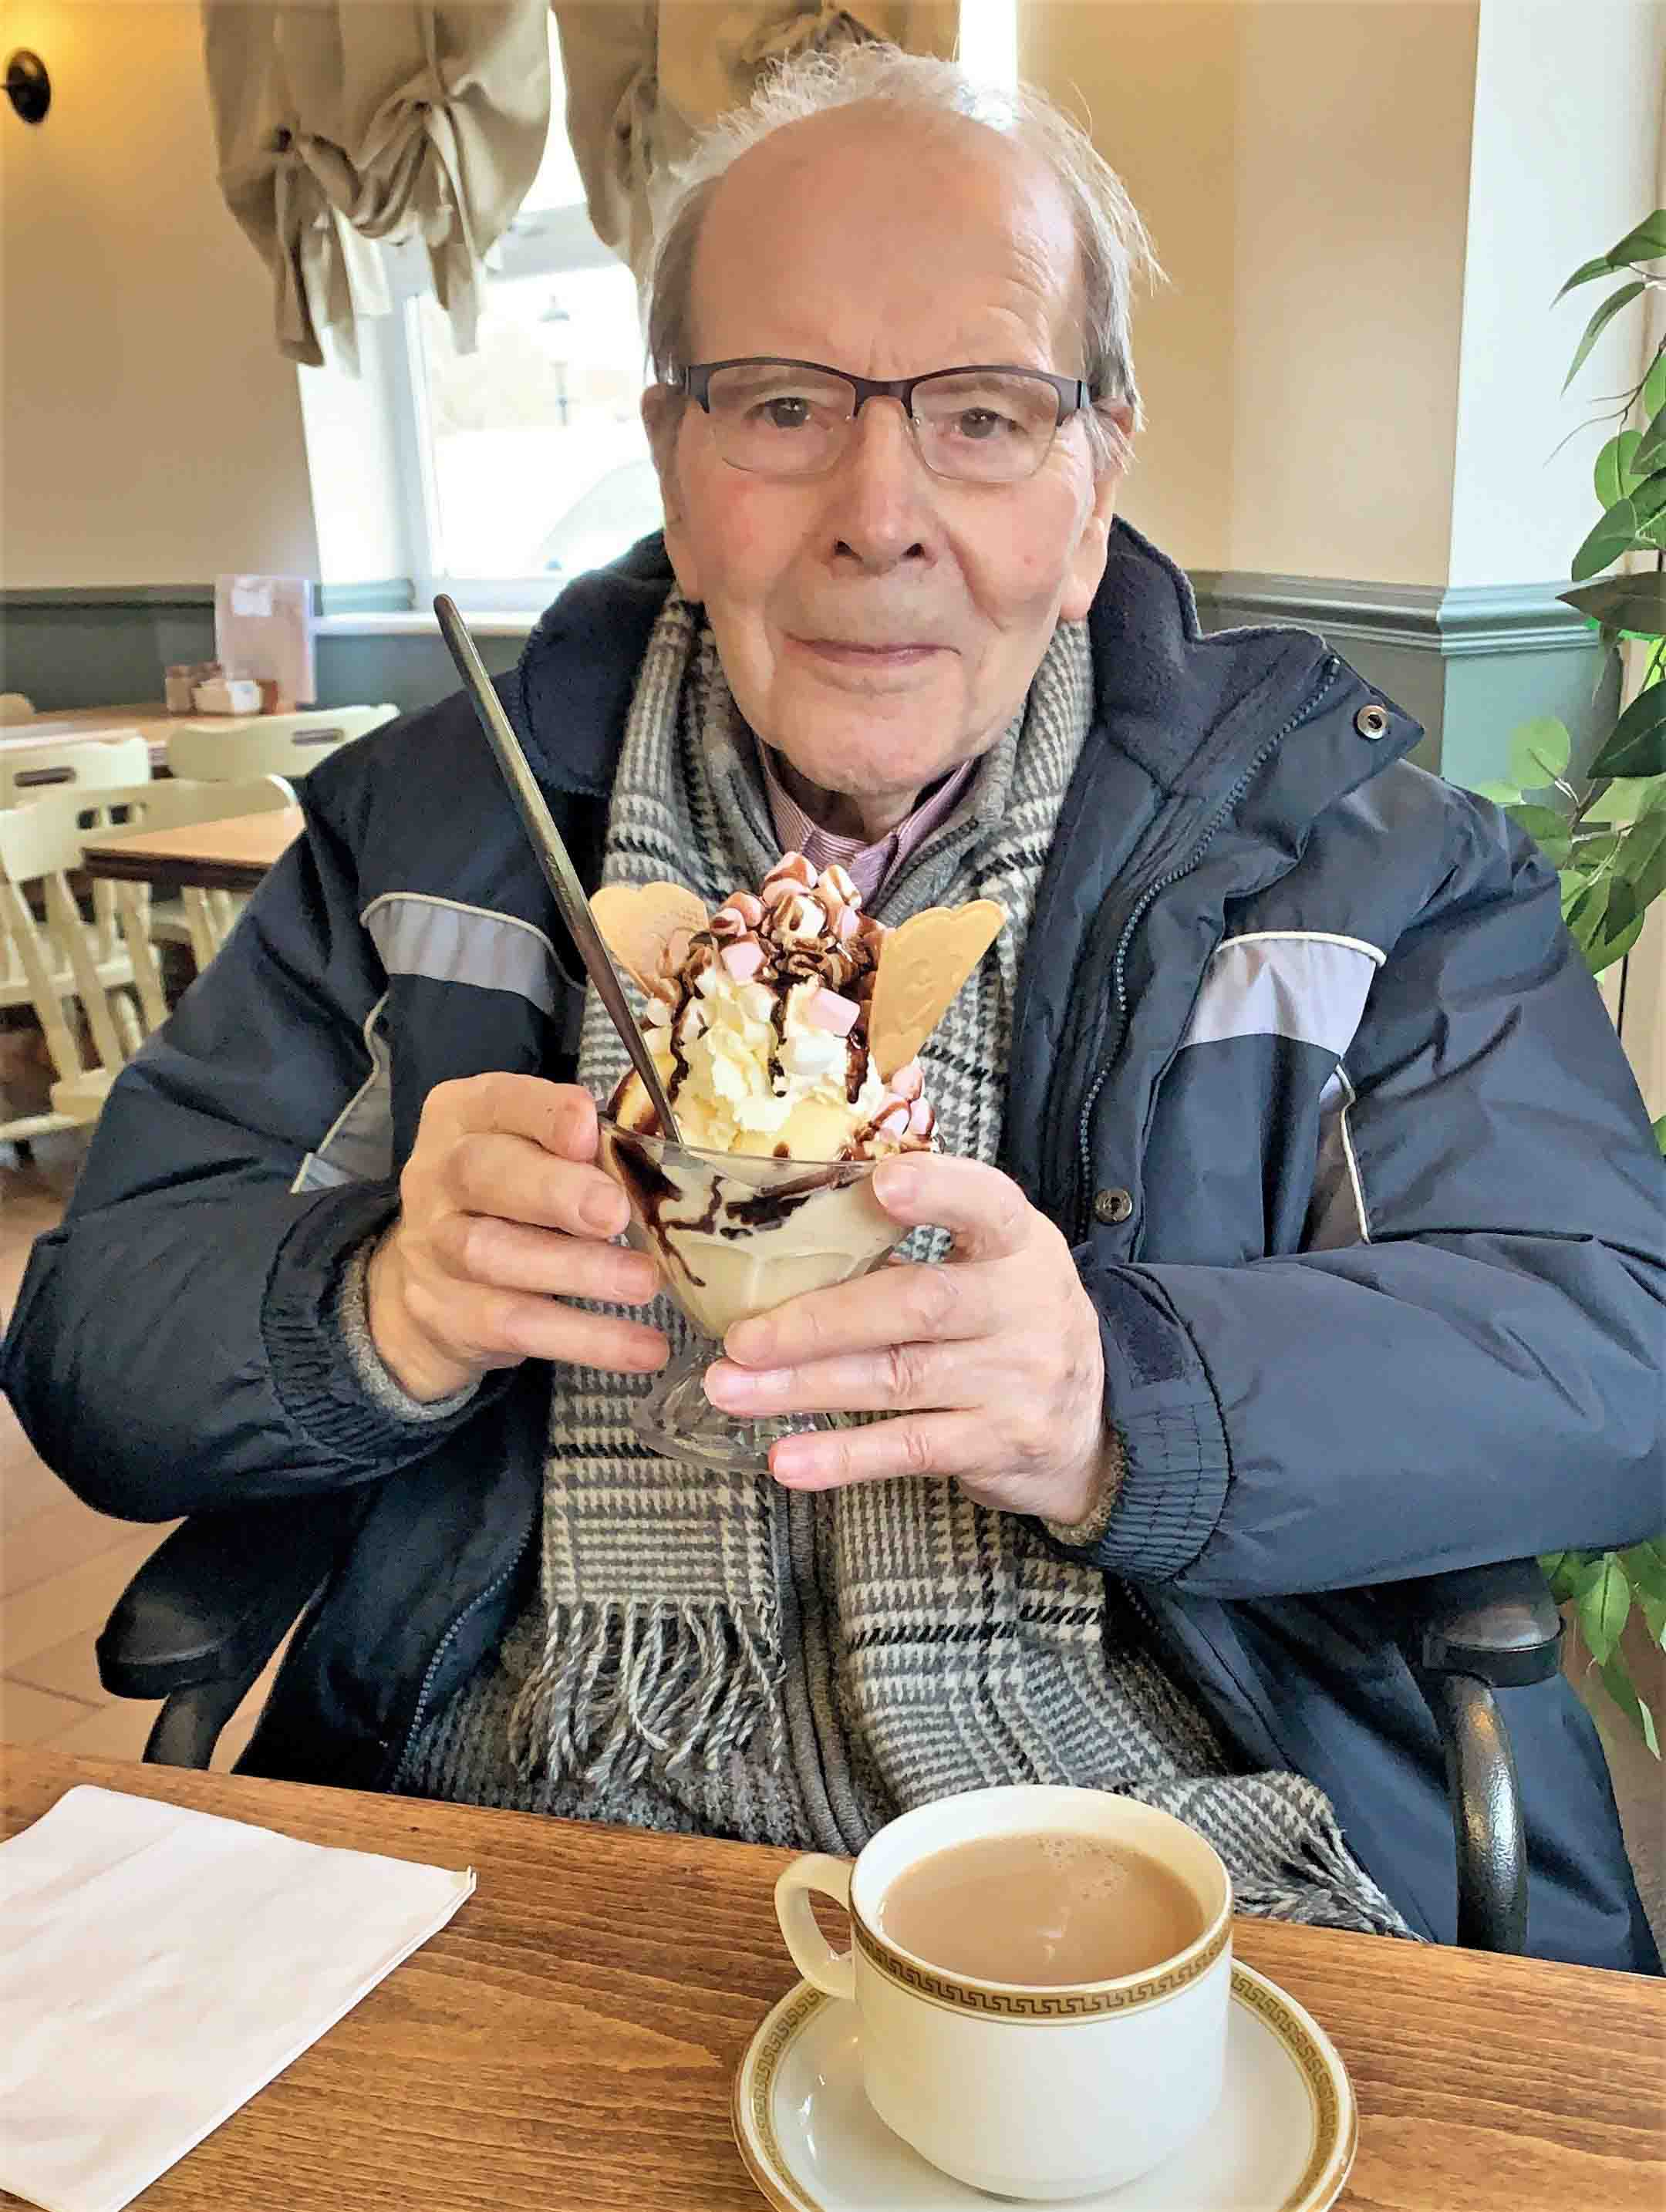 A resident at Flowerdown Care Home in Winchester treats his sweet tooth to an ice cream sundae